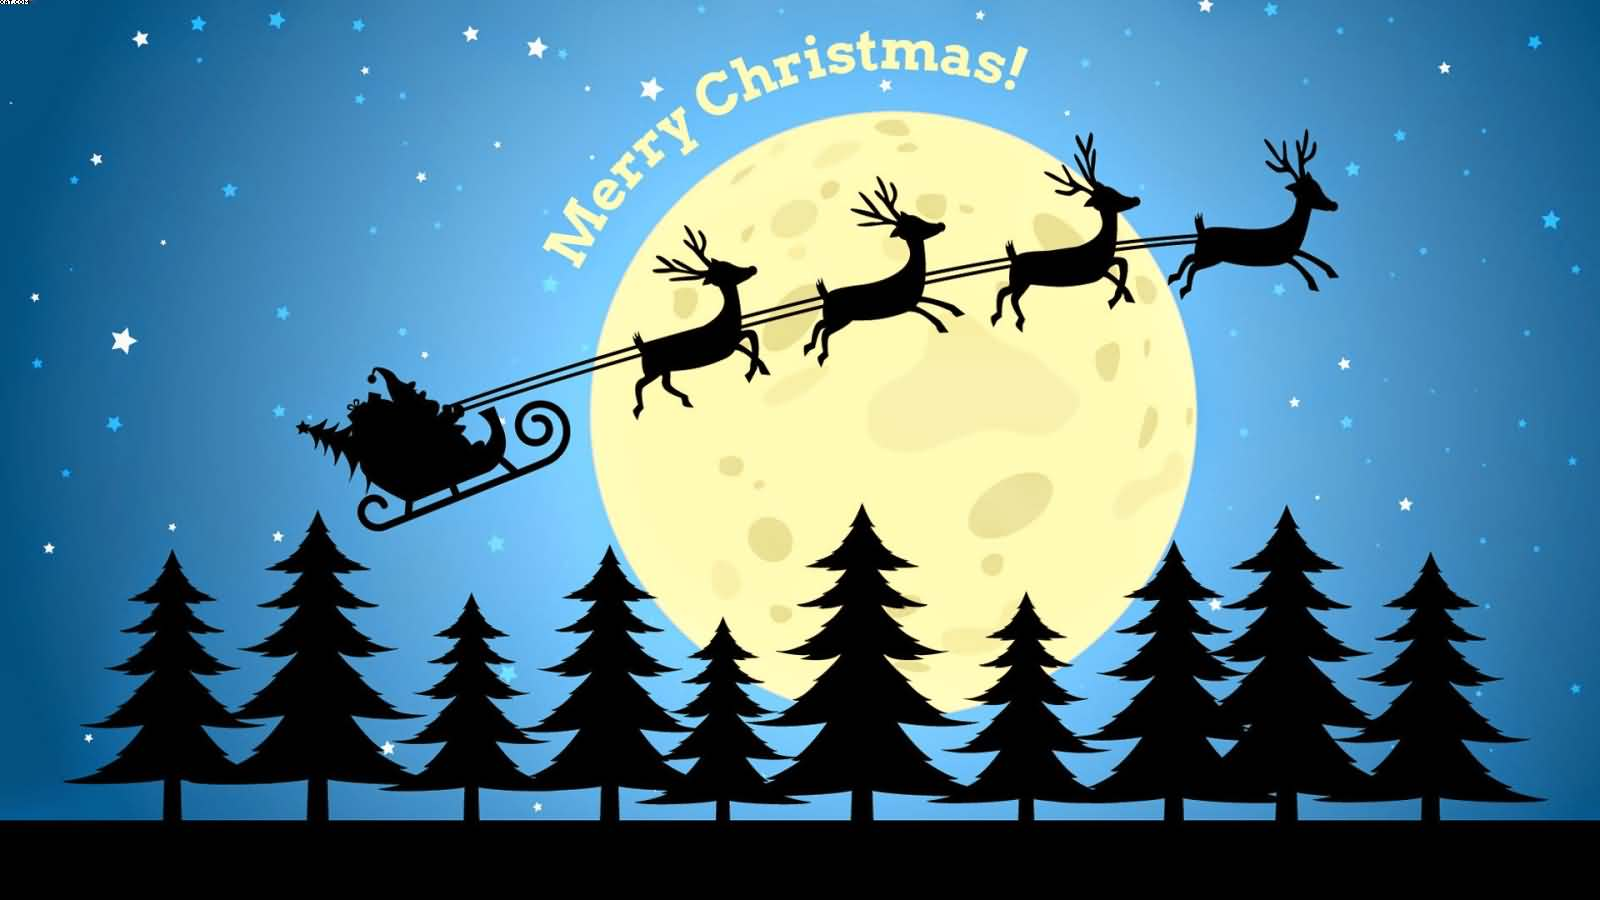 Merry Christmas Deers pulling Santa Sledge beautiful night full moon